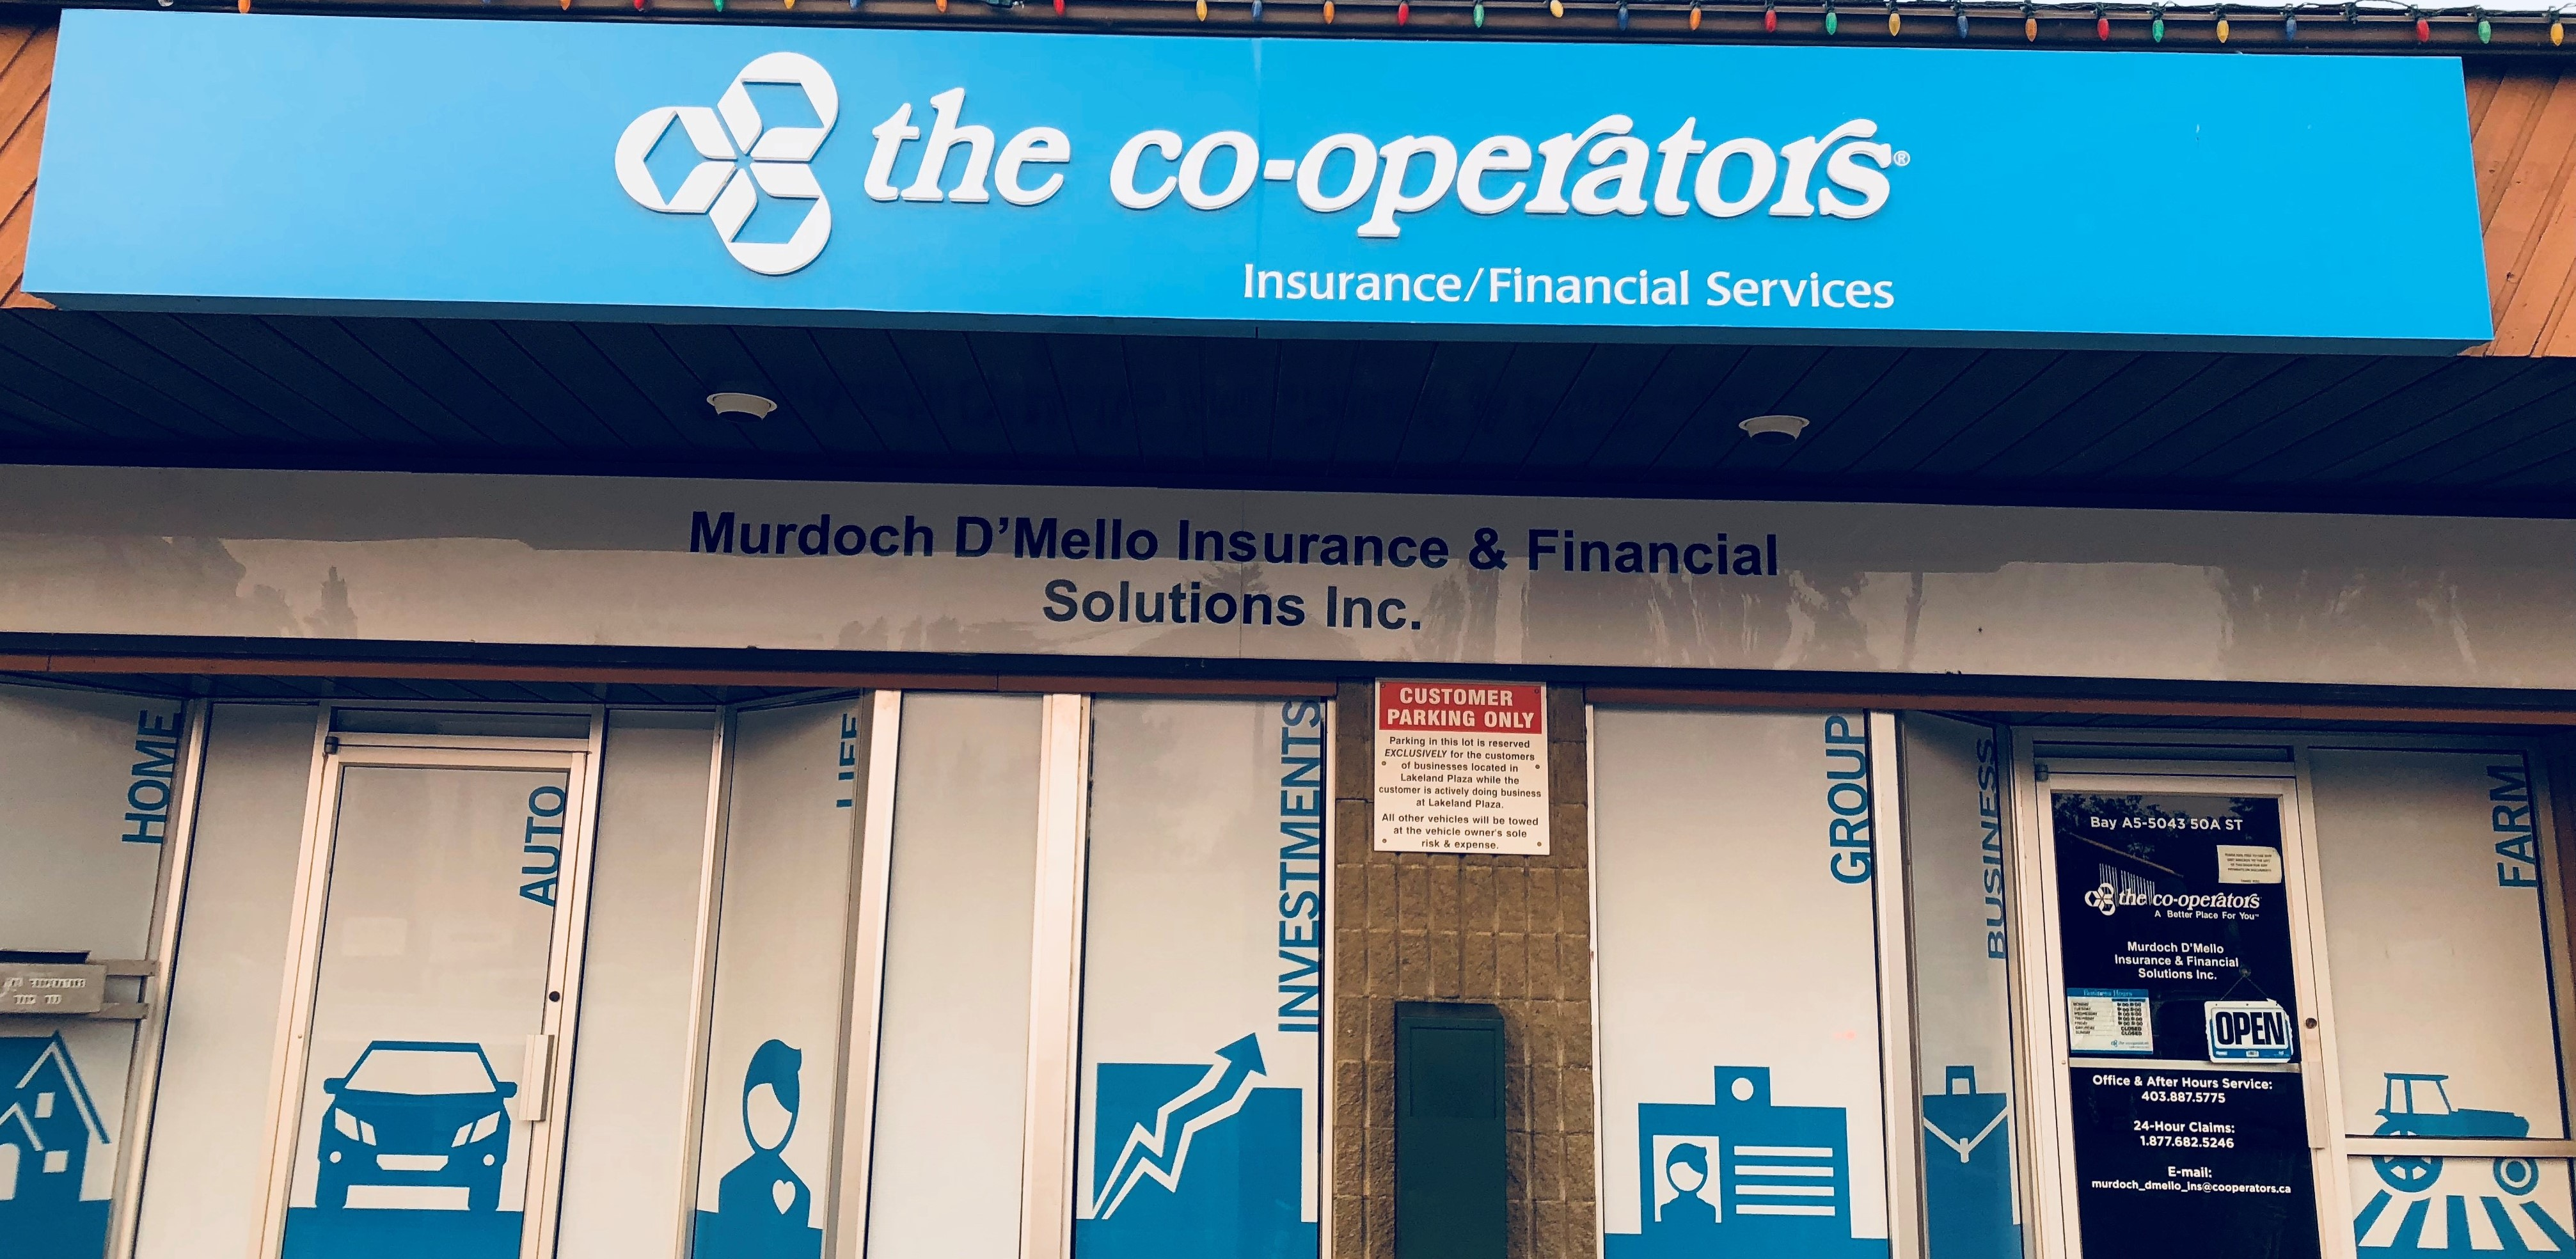 THE CO-OPERATORS, MURDOCH D'MELLO INSURANCE & FINANCIAL SOLUTIONS INC image 1